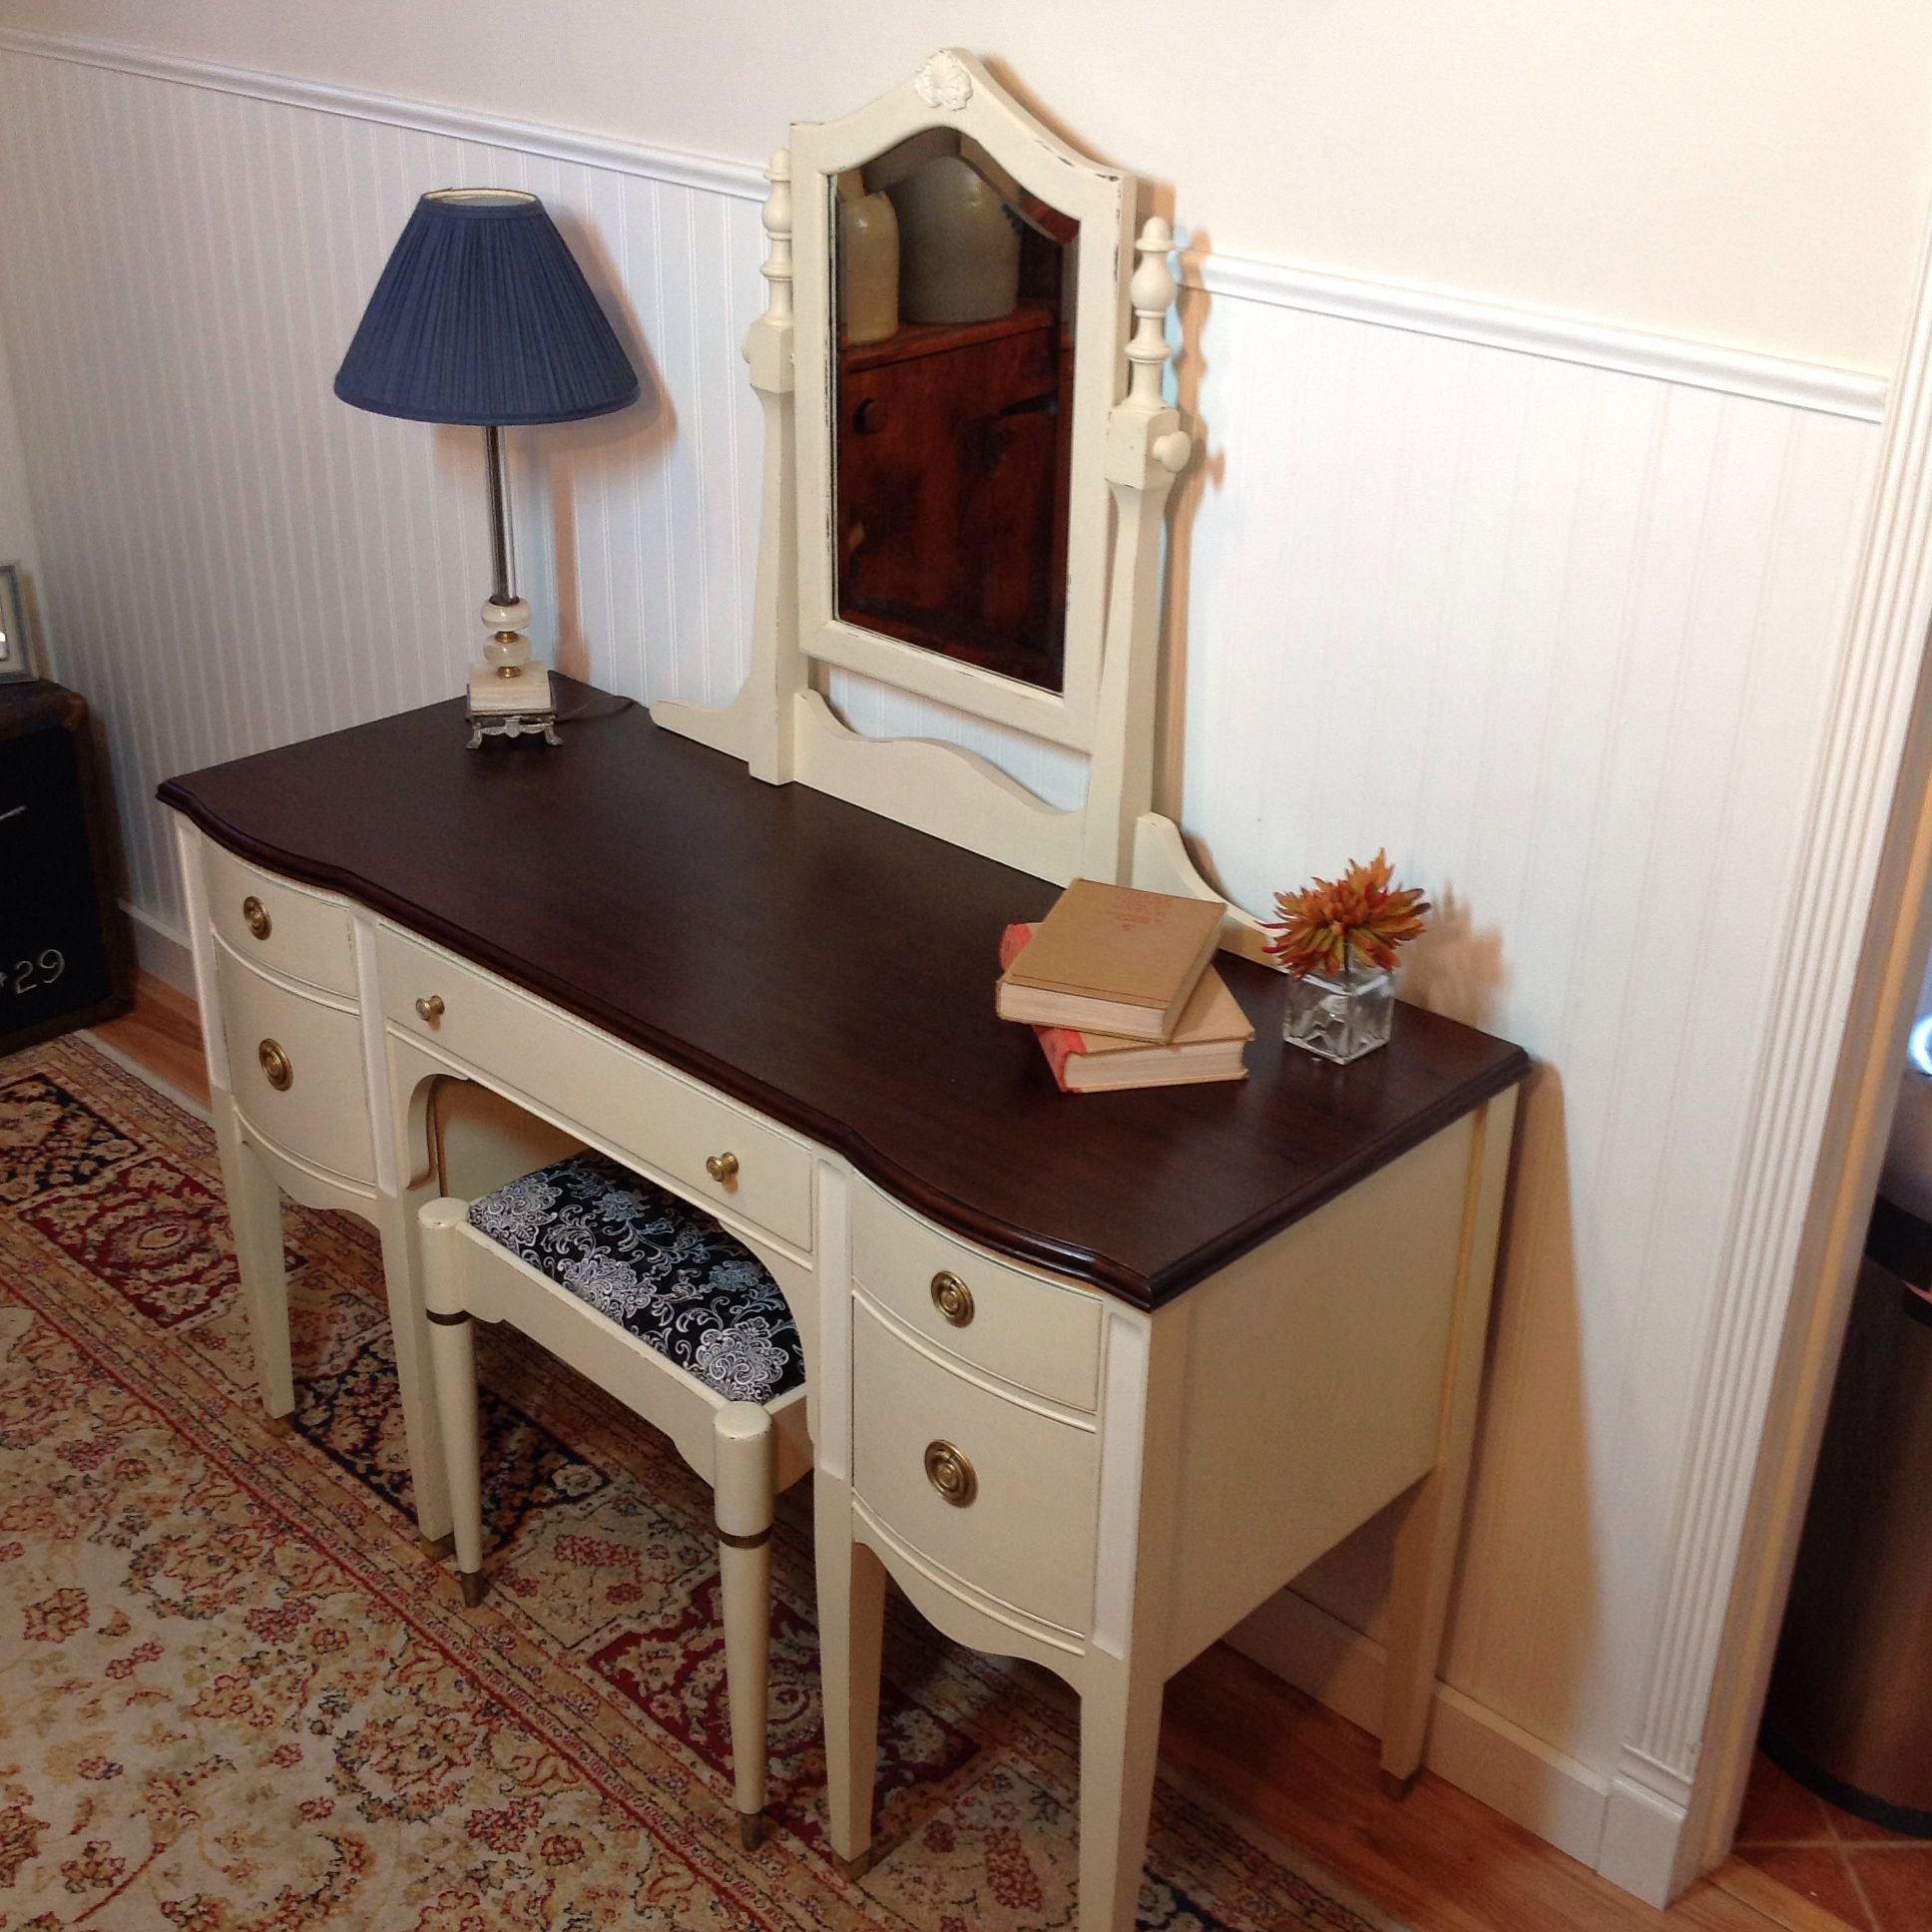 Dressing Table Going On NH Craigs List